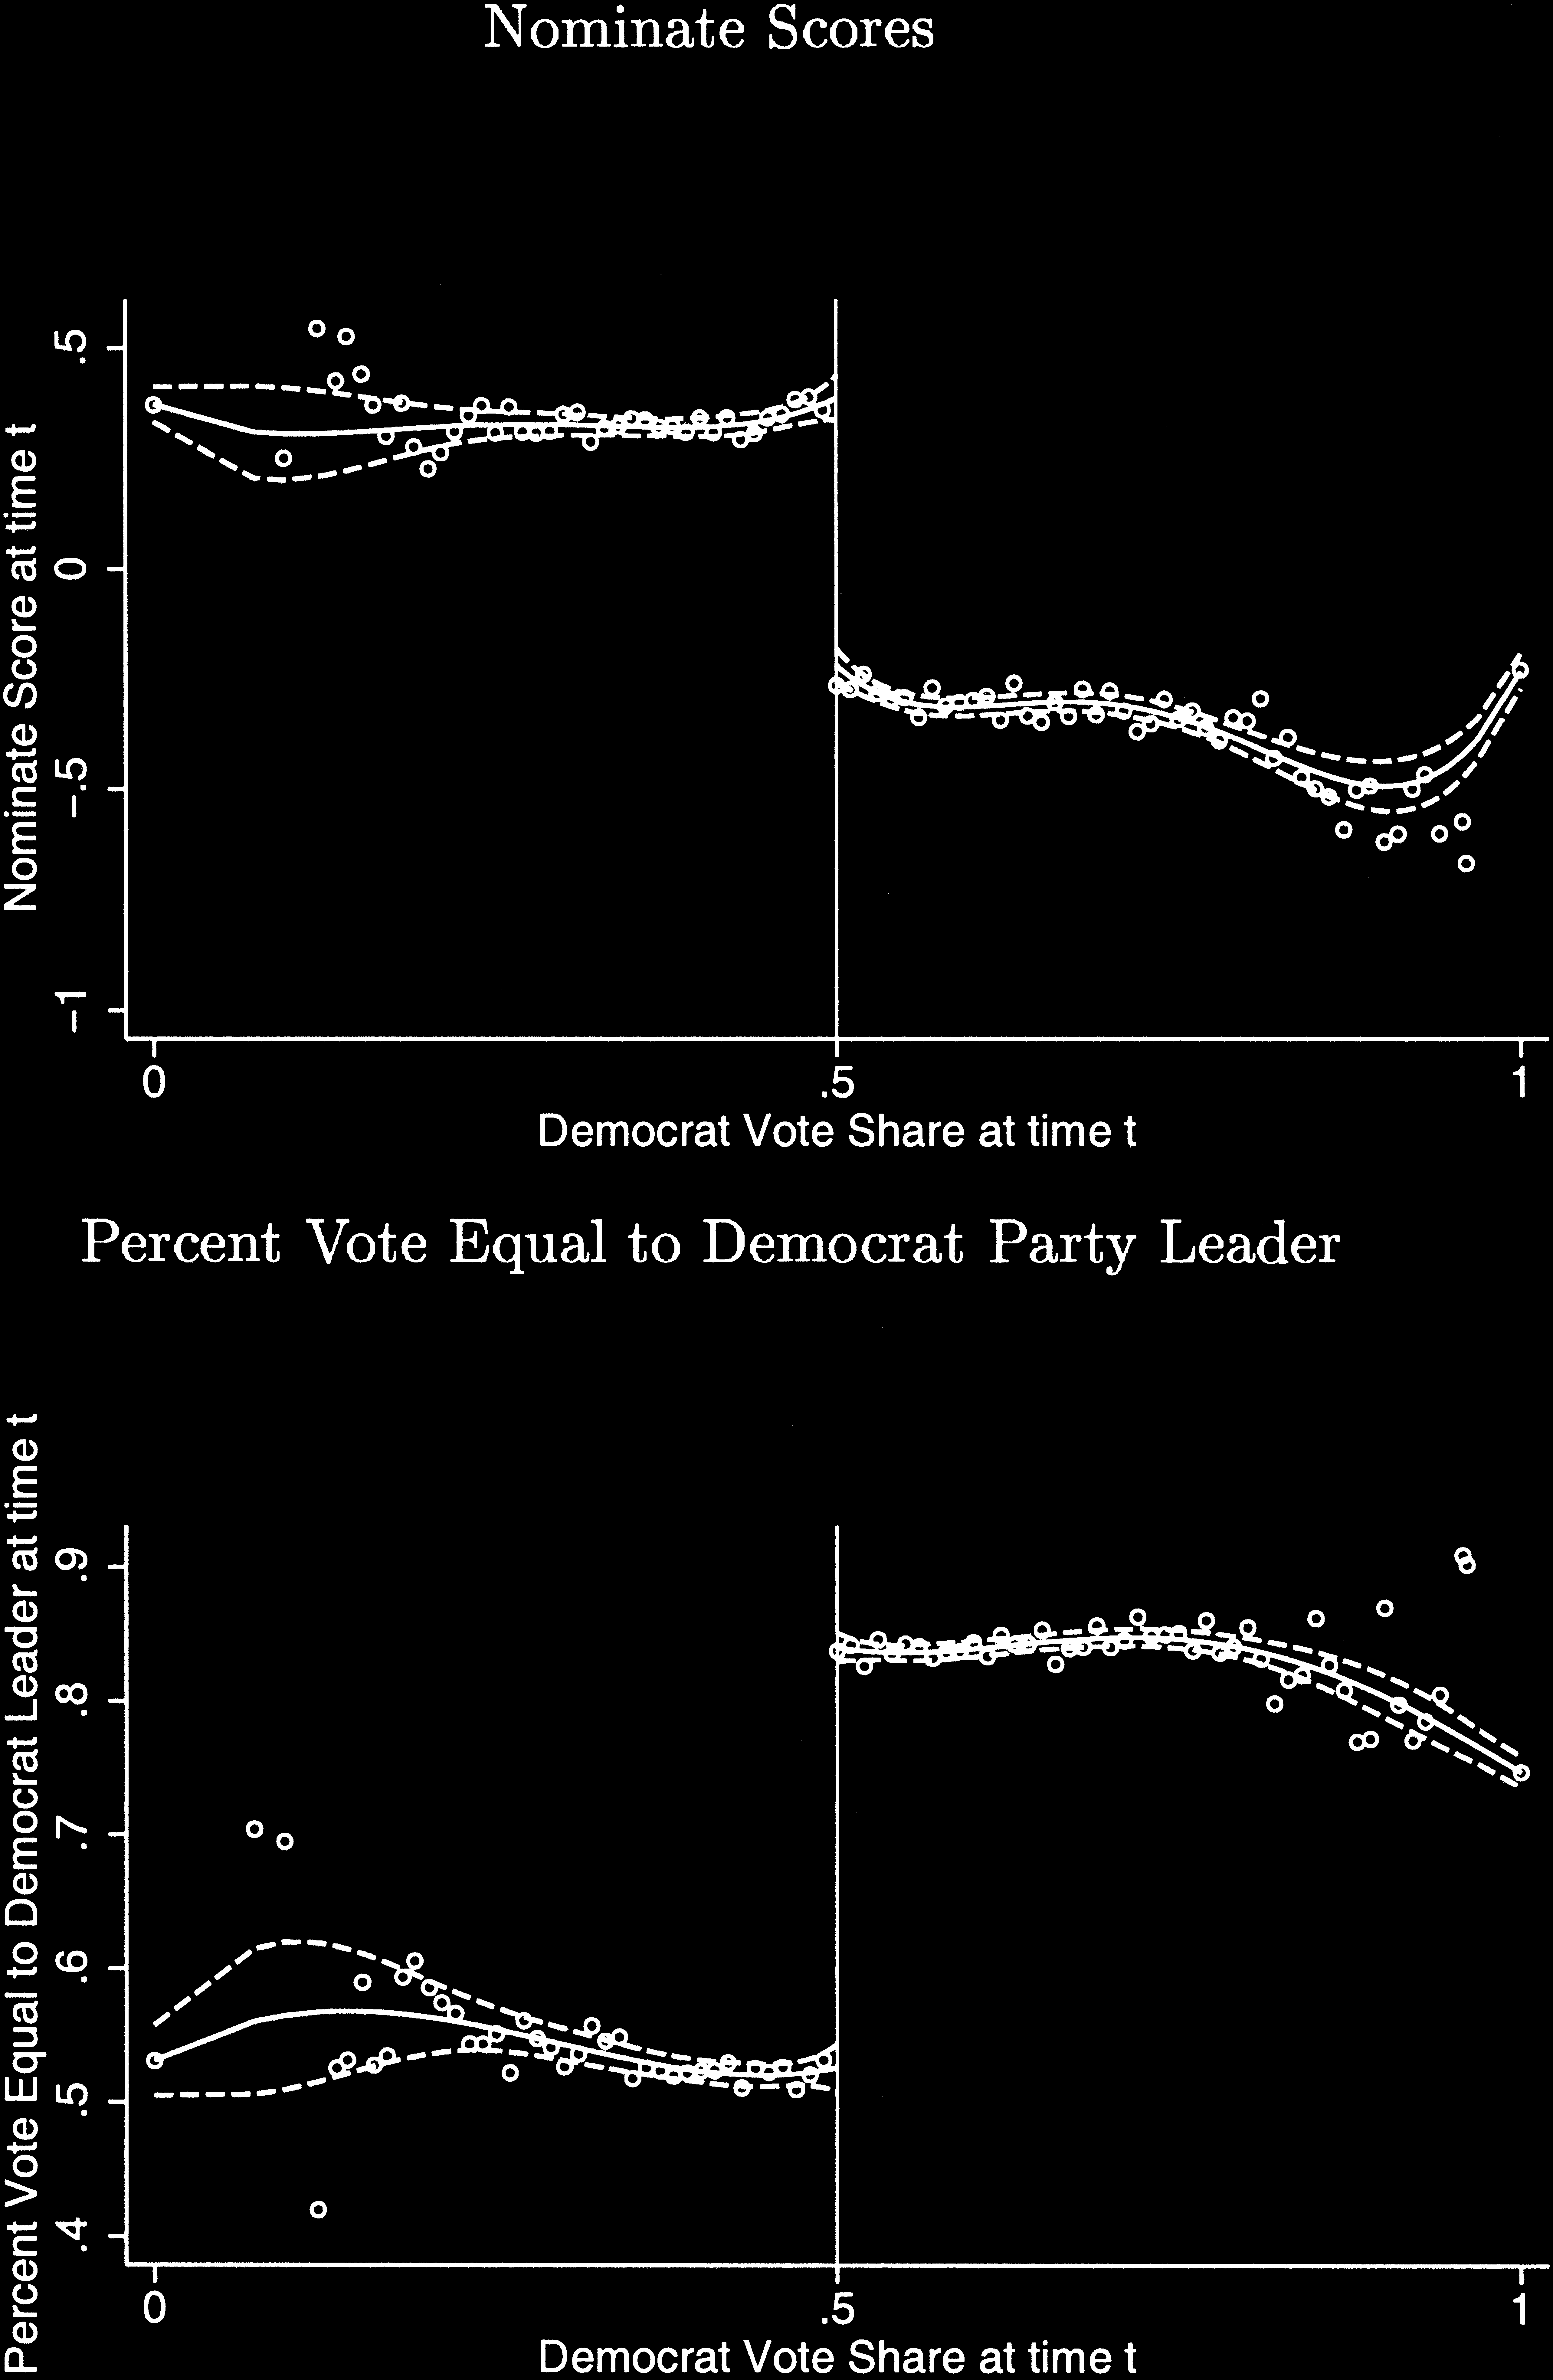 840 QUARTERLY JOURNAL OF ECONOMICS FIGURE VI Nominate Scores, by Democrat Vote Share; and Percent Voted with Democrat Leader, by Democrat Vote Share The top panel plots DW-Nominate scores at time t